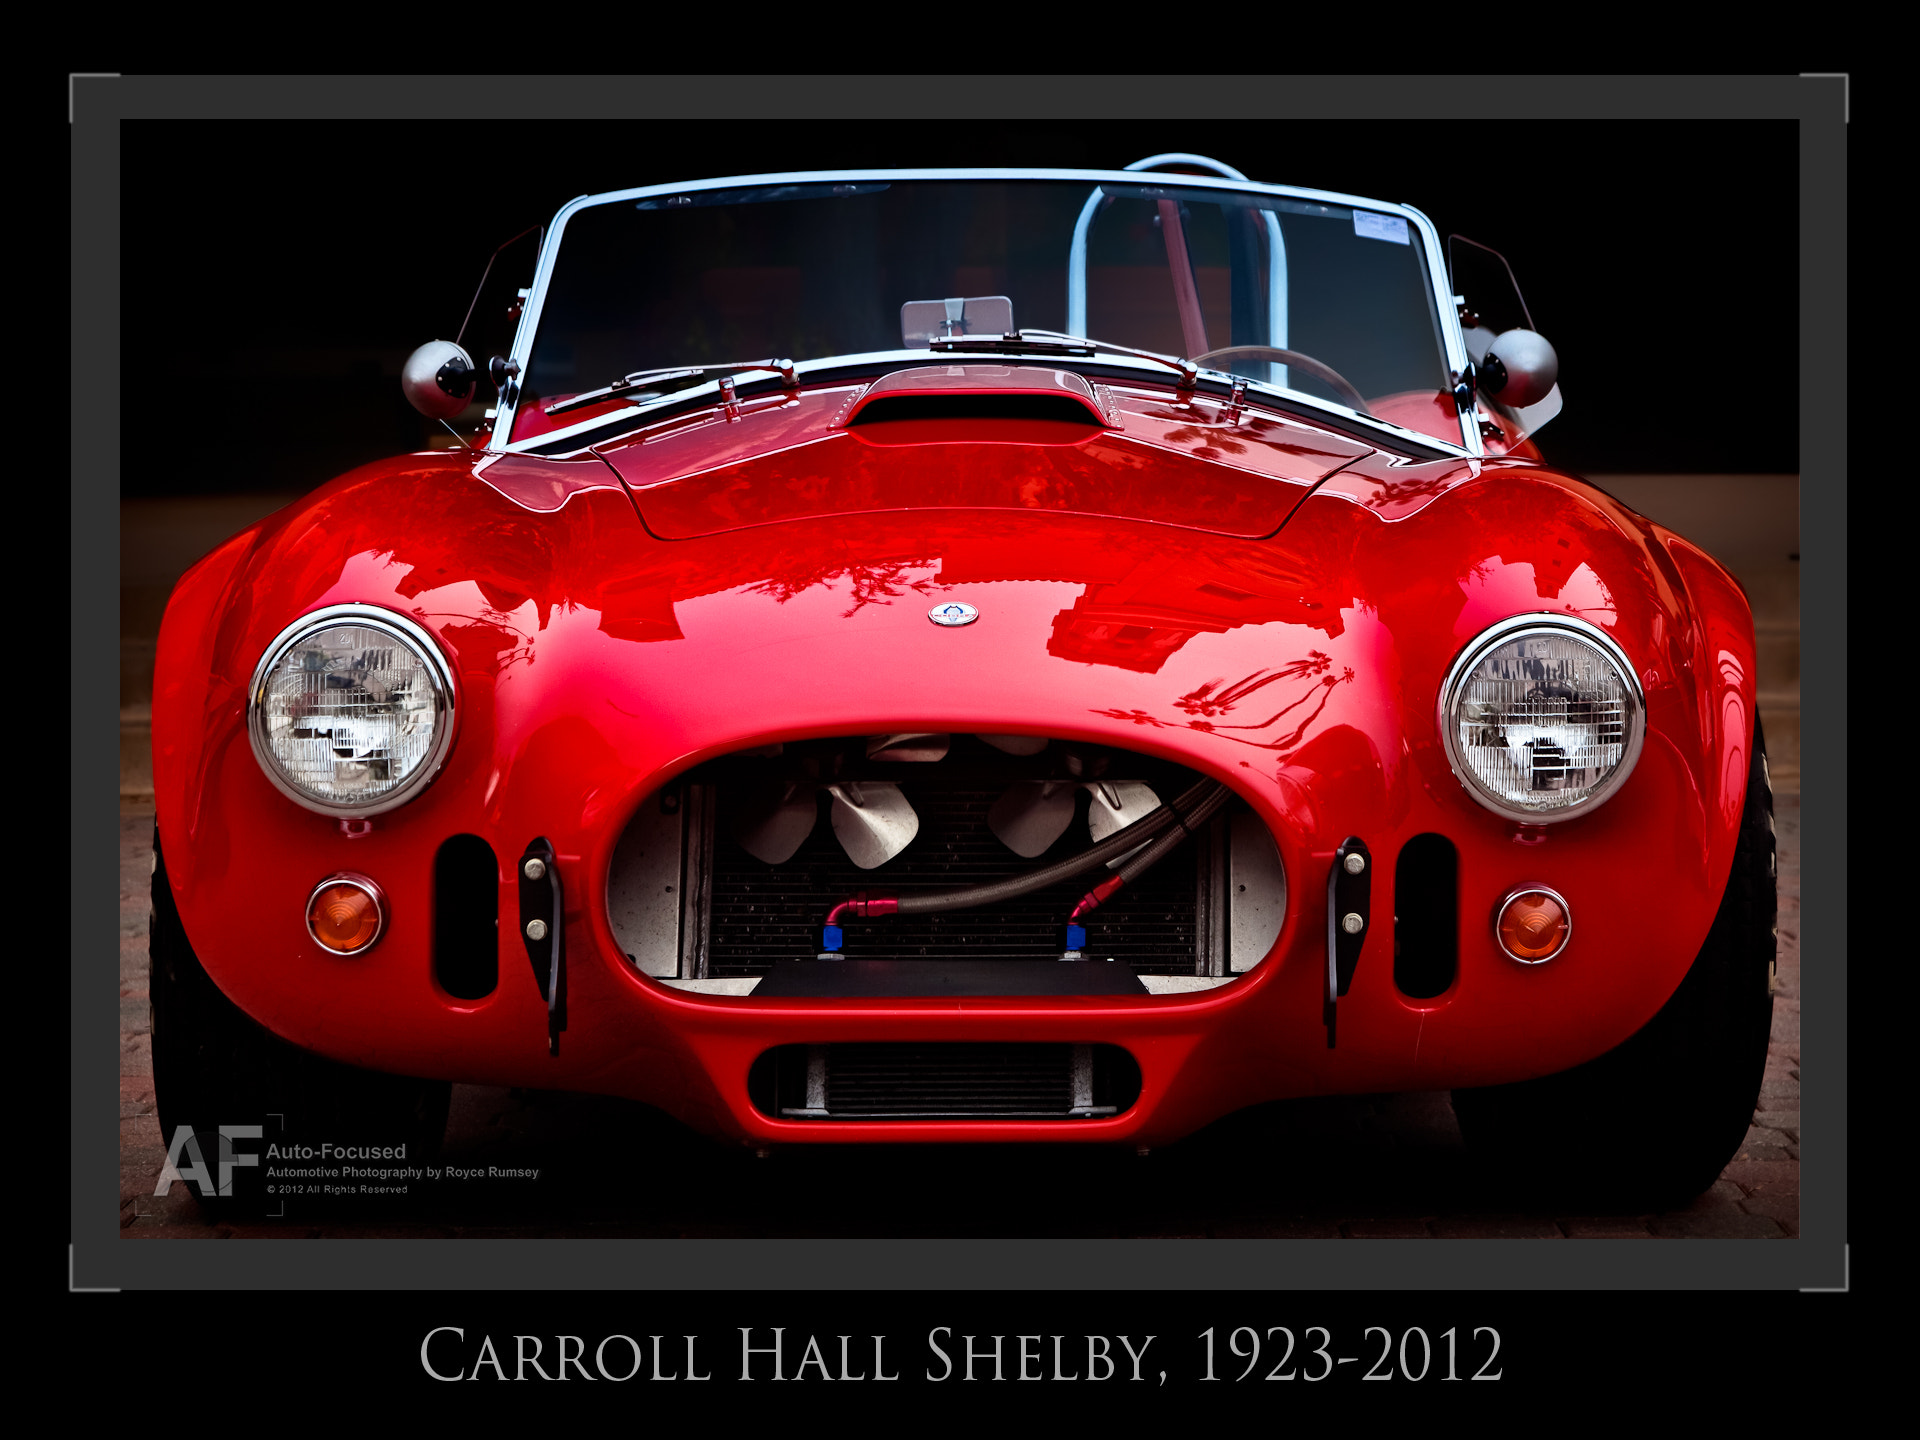 Photograph Carroll Hall Shelby, 1923-2012 by Royce Rumsey on 500px